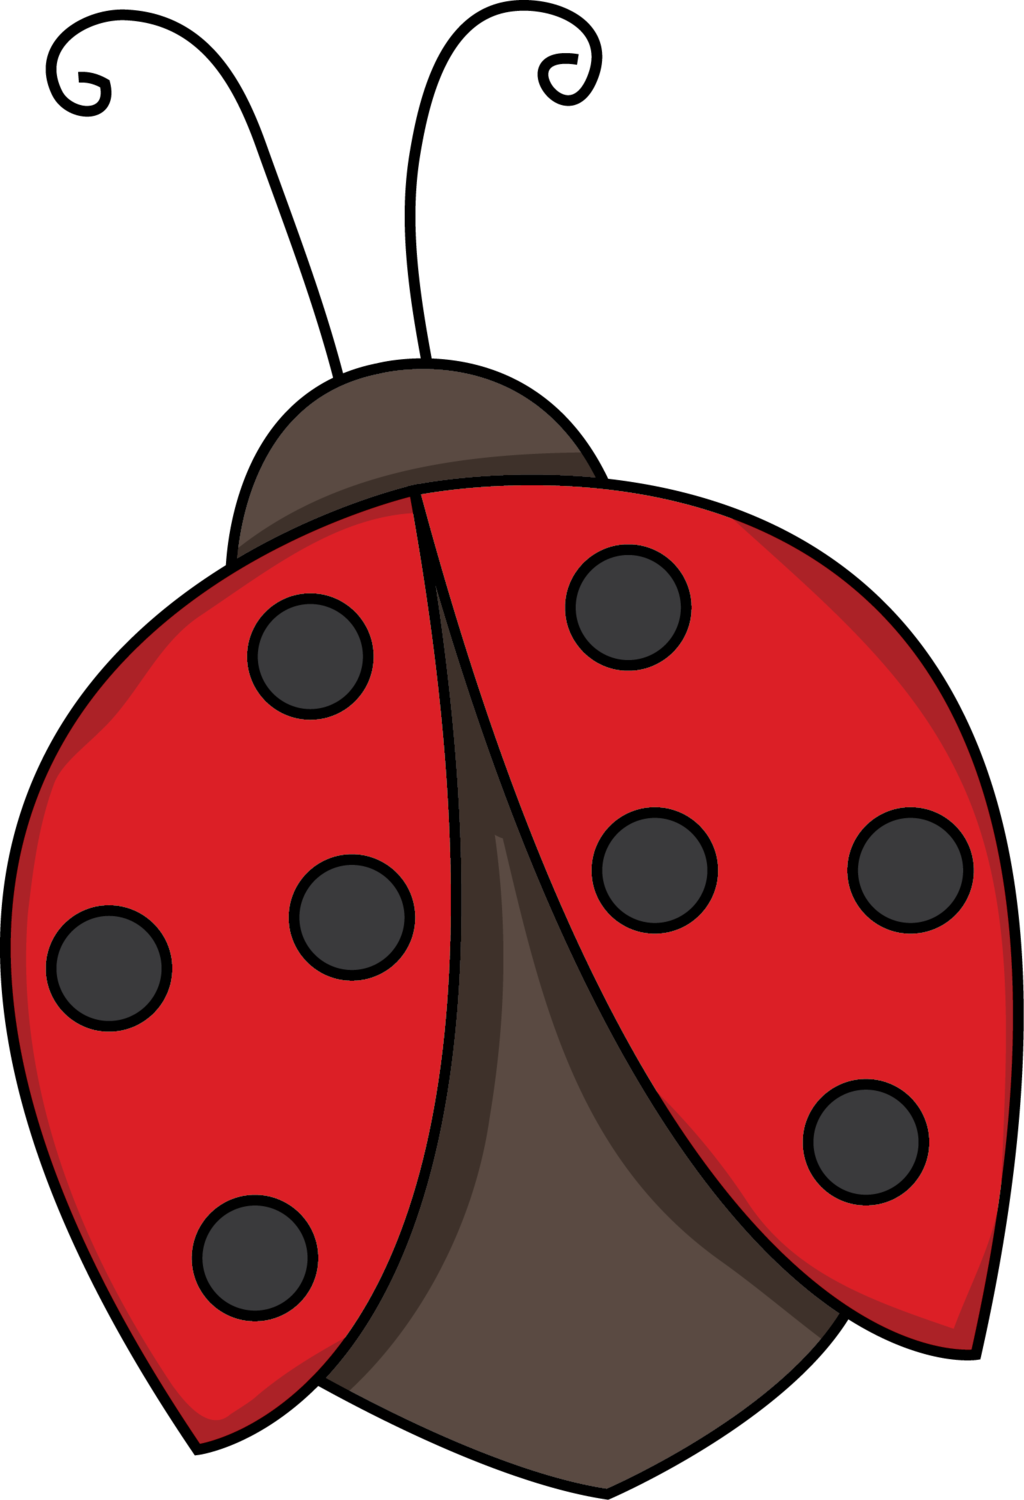 Free Ladybugs Clipart, Download Free Clip Art, Free Clip Art.